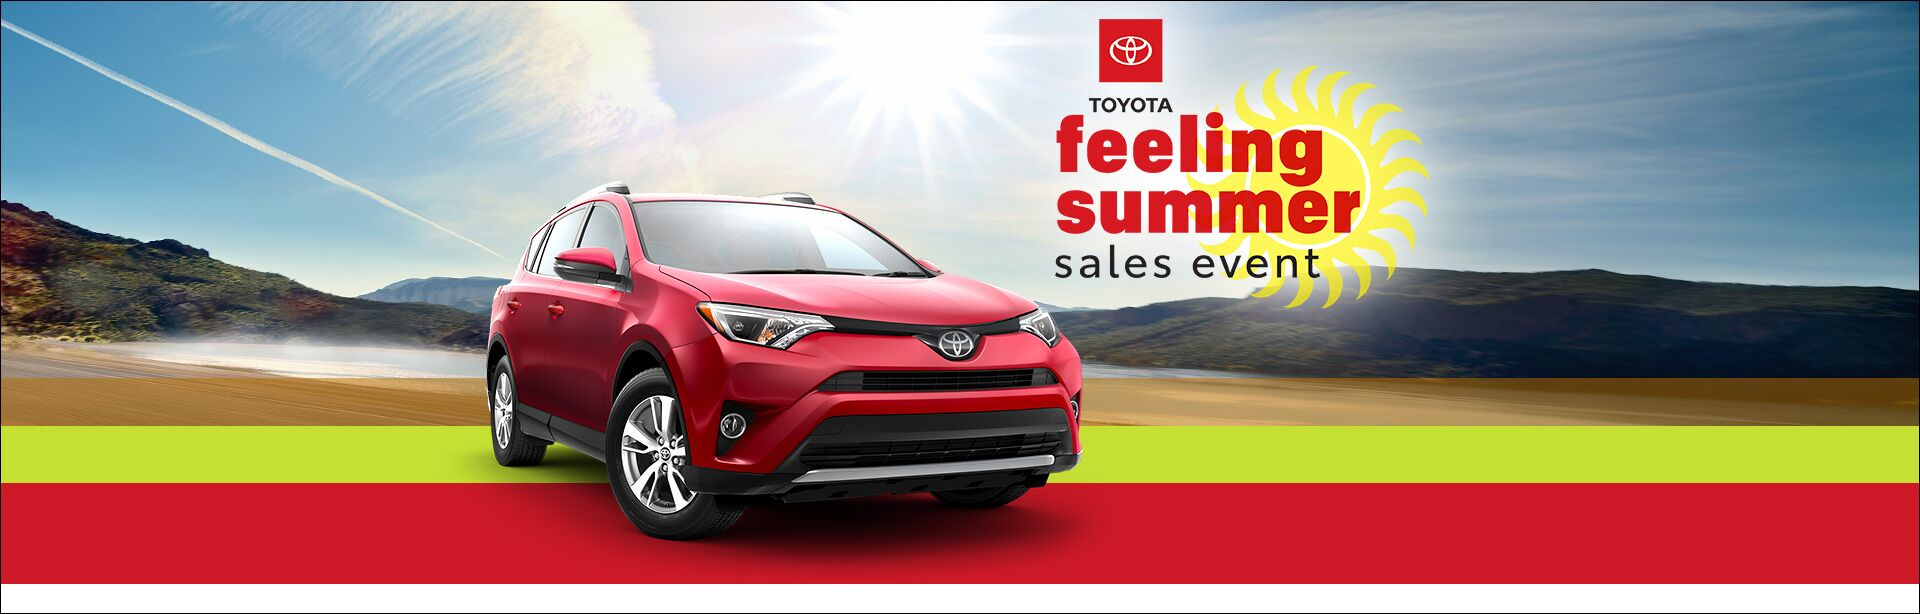 Feeling Summer Sales Event